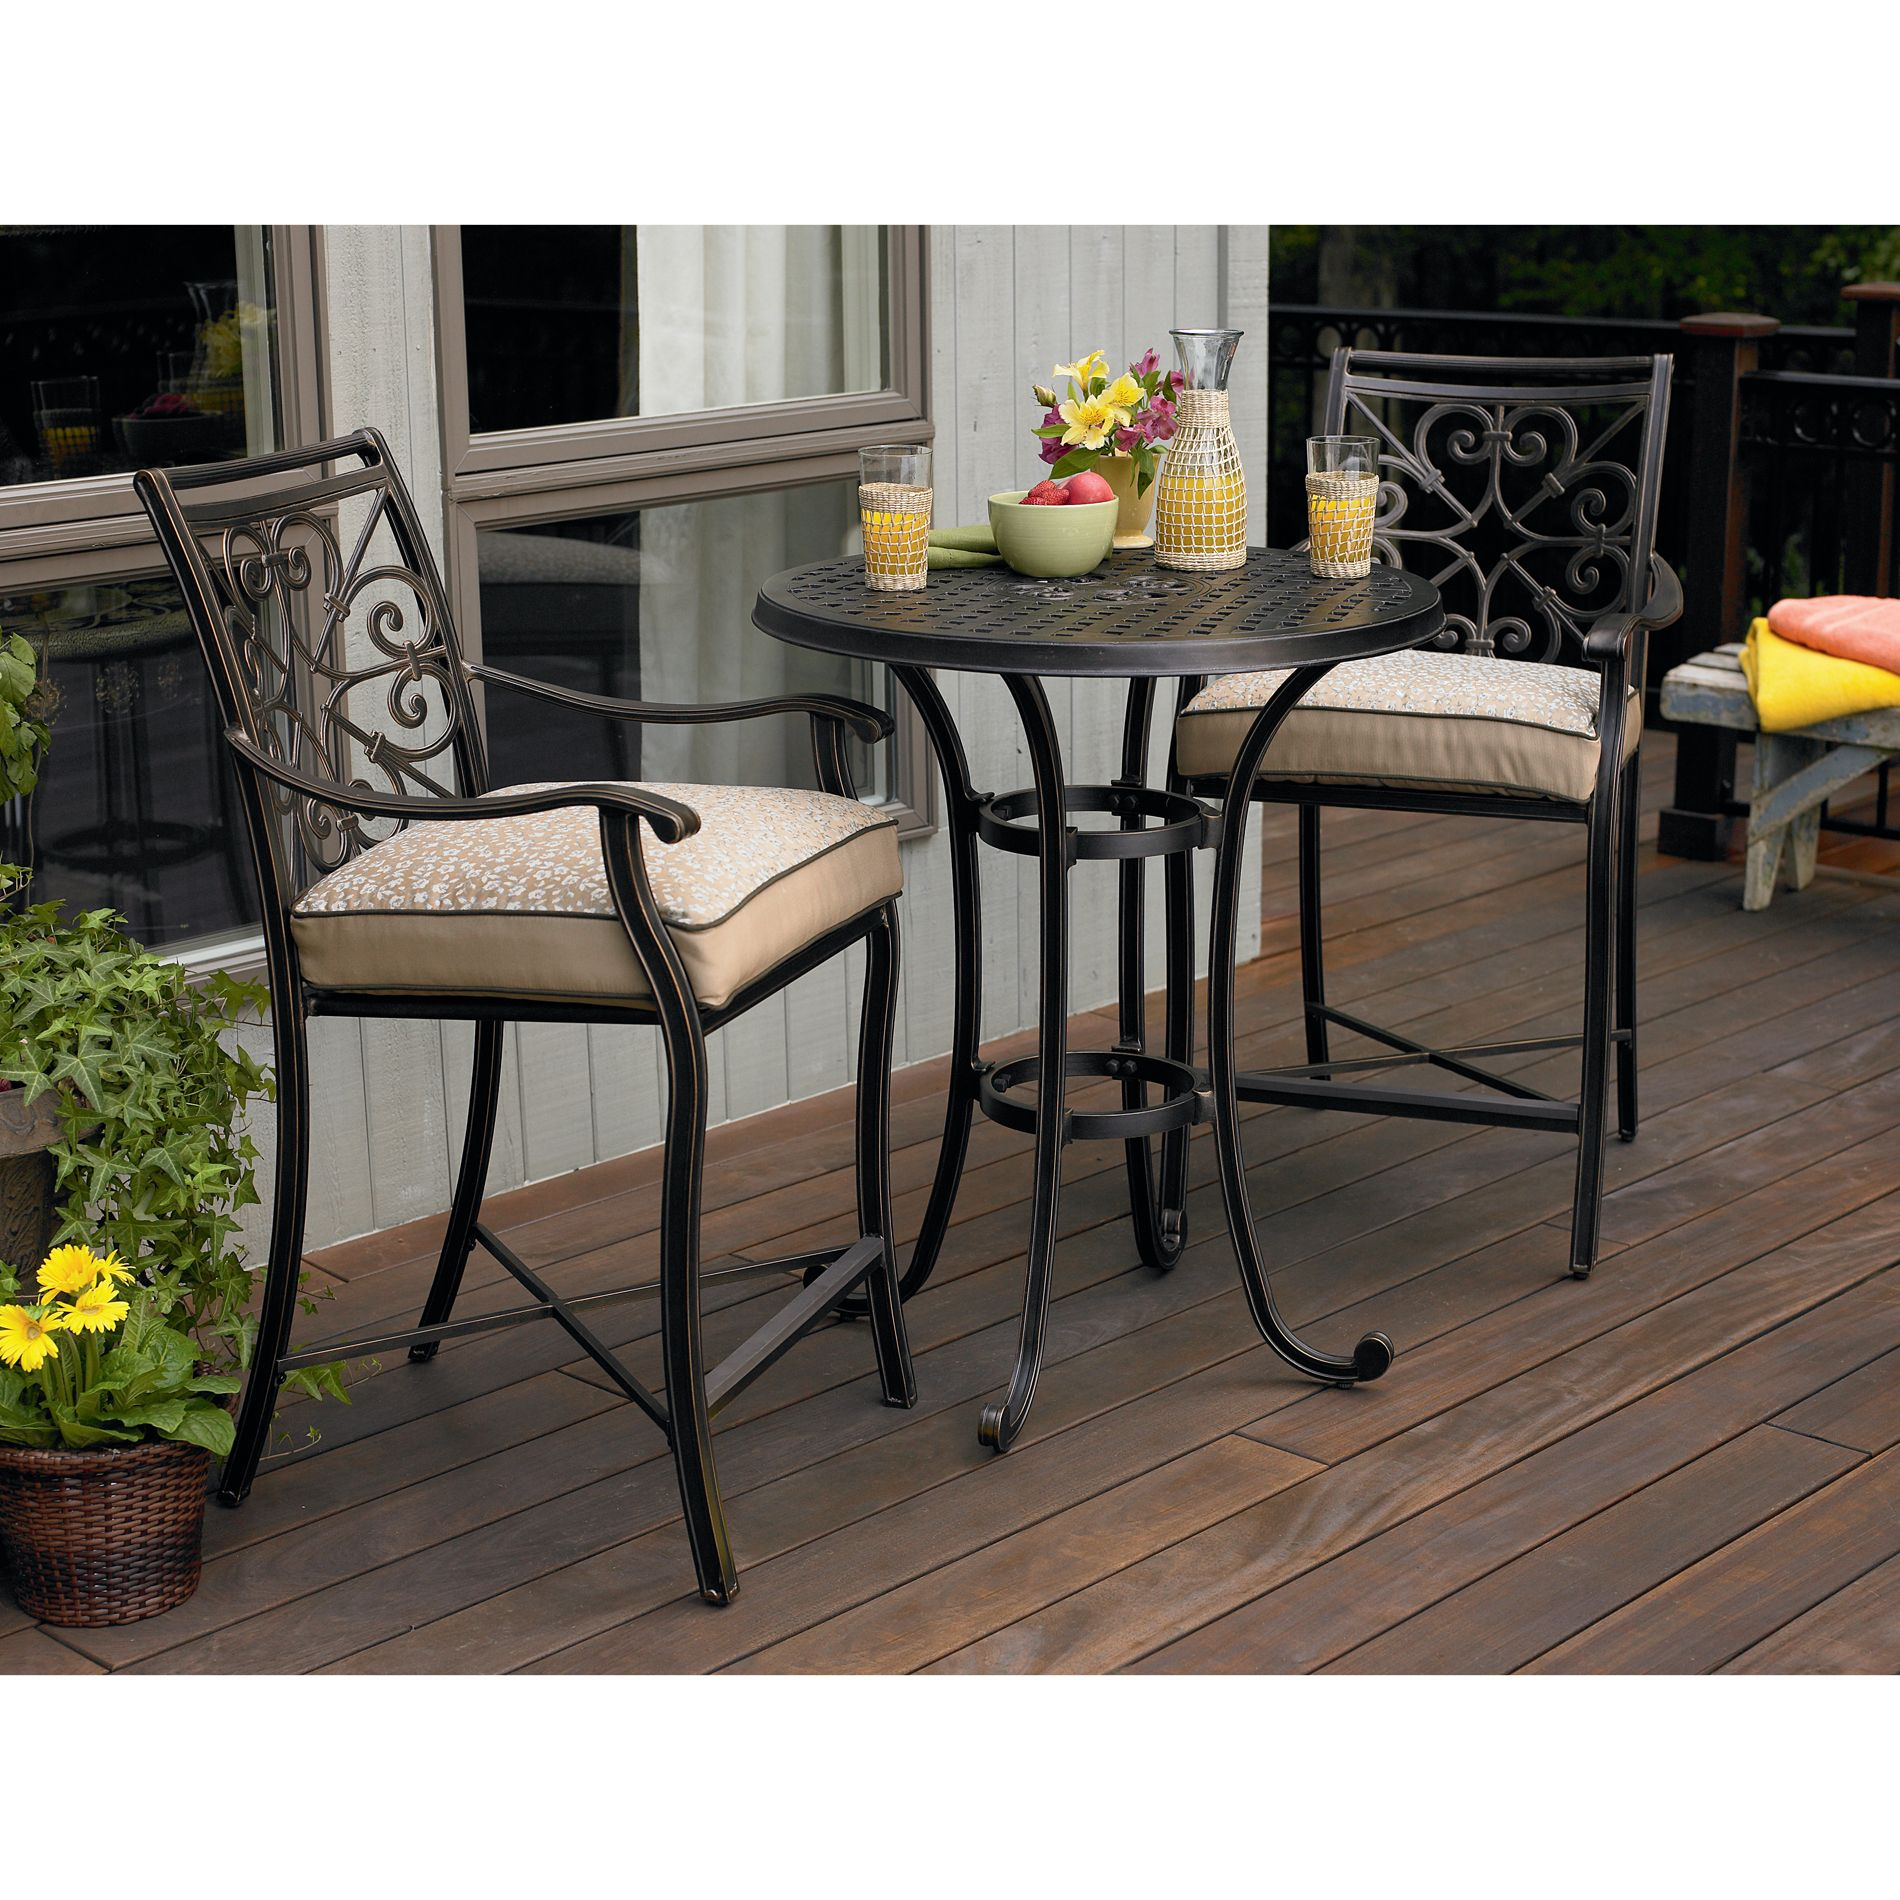 Fair Oaks 3pc Balcony Height Bistro Set